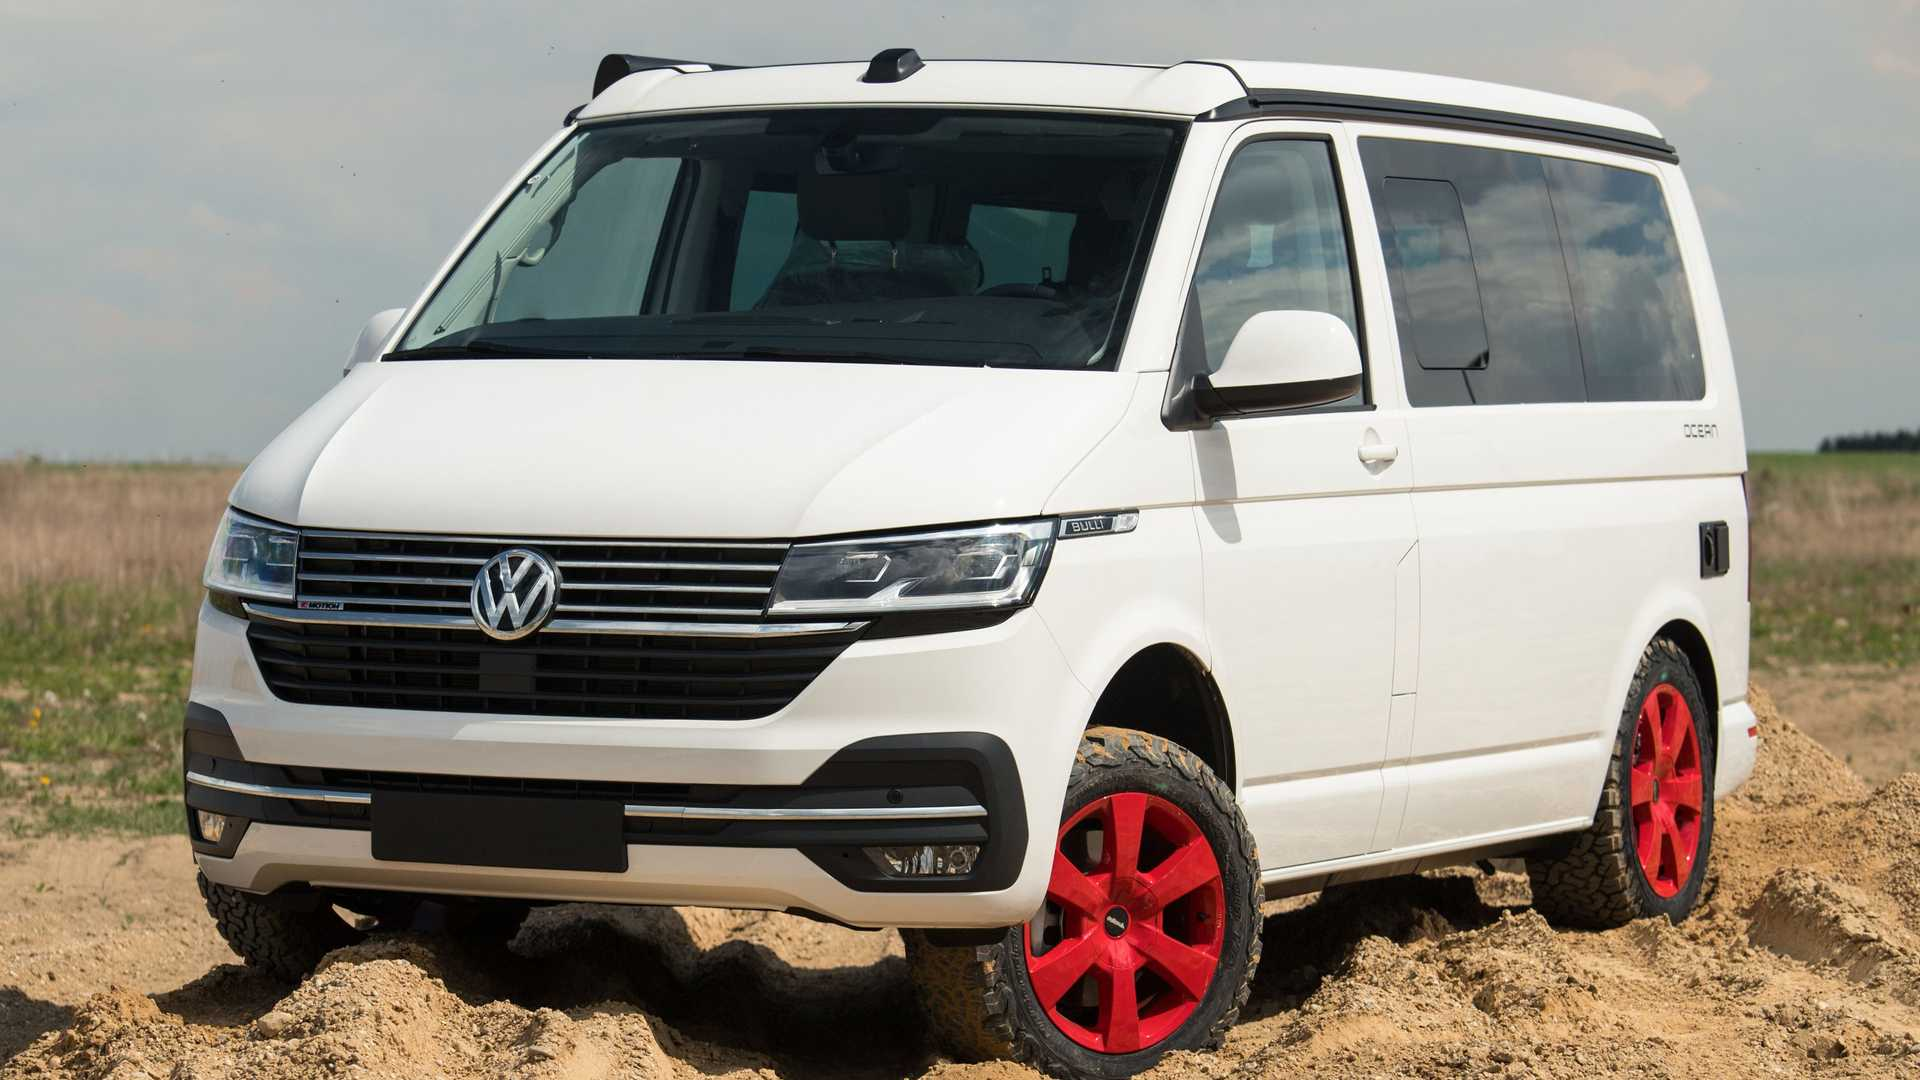 Lifted Vw Transporter Is Ready For An Off Road Adventure